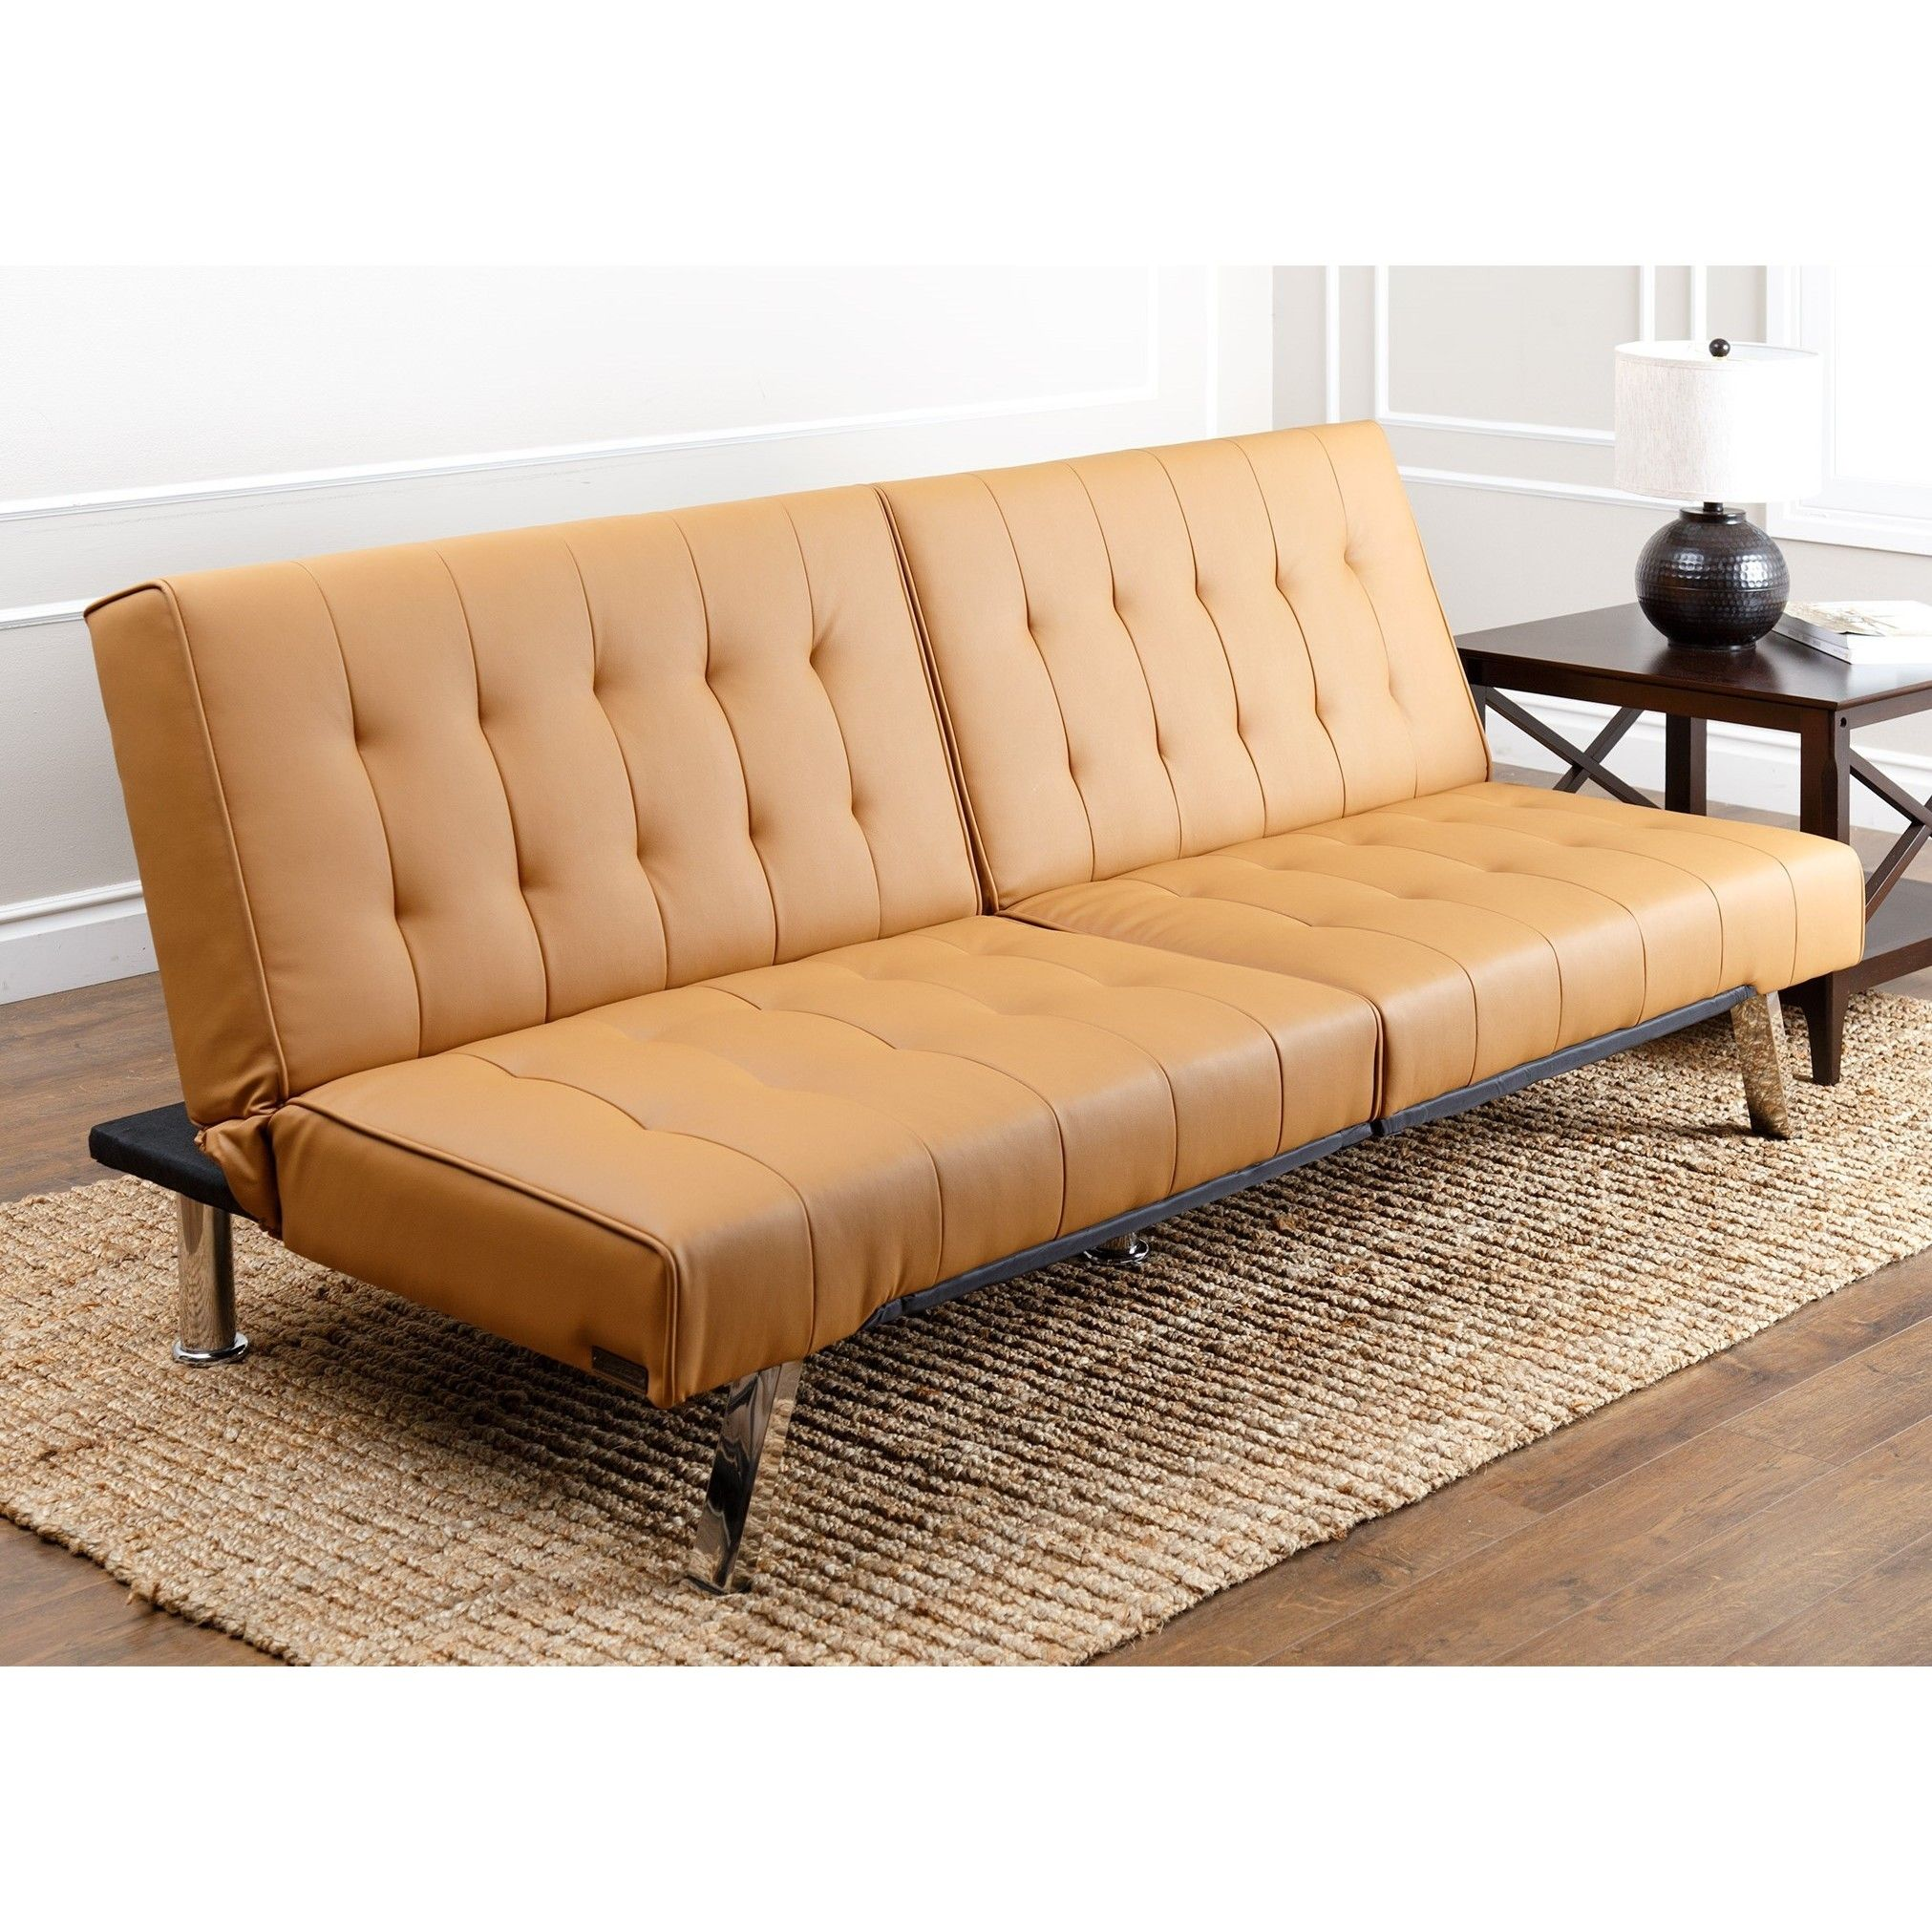 - The Rich Toned Leather Upholstery Of This Futon-sofa Establishes